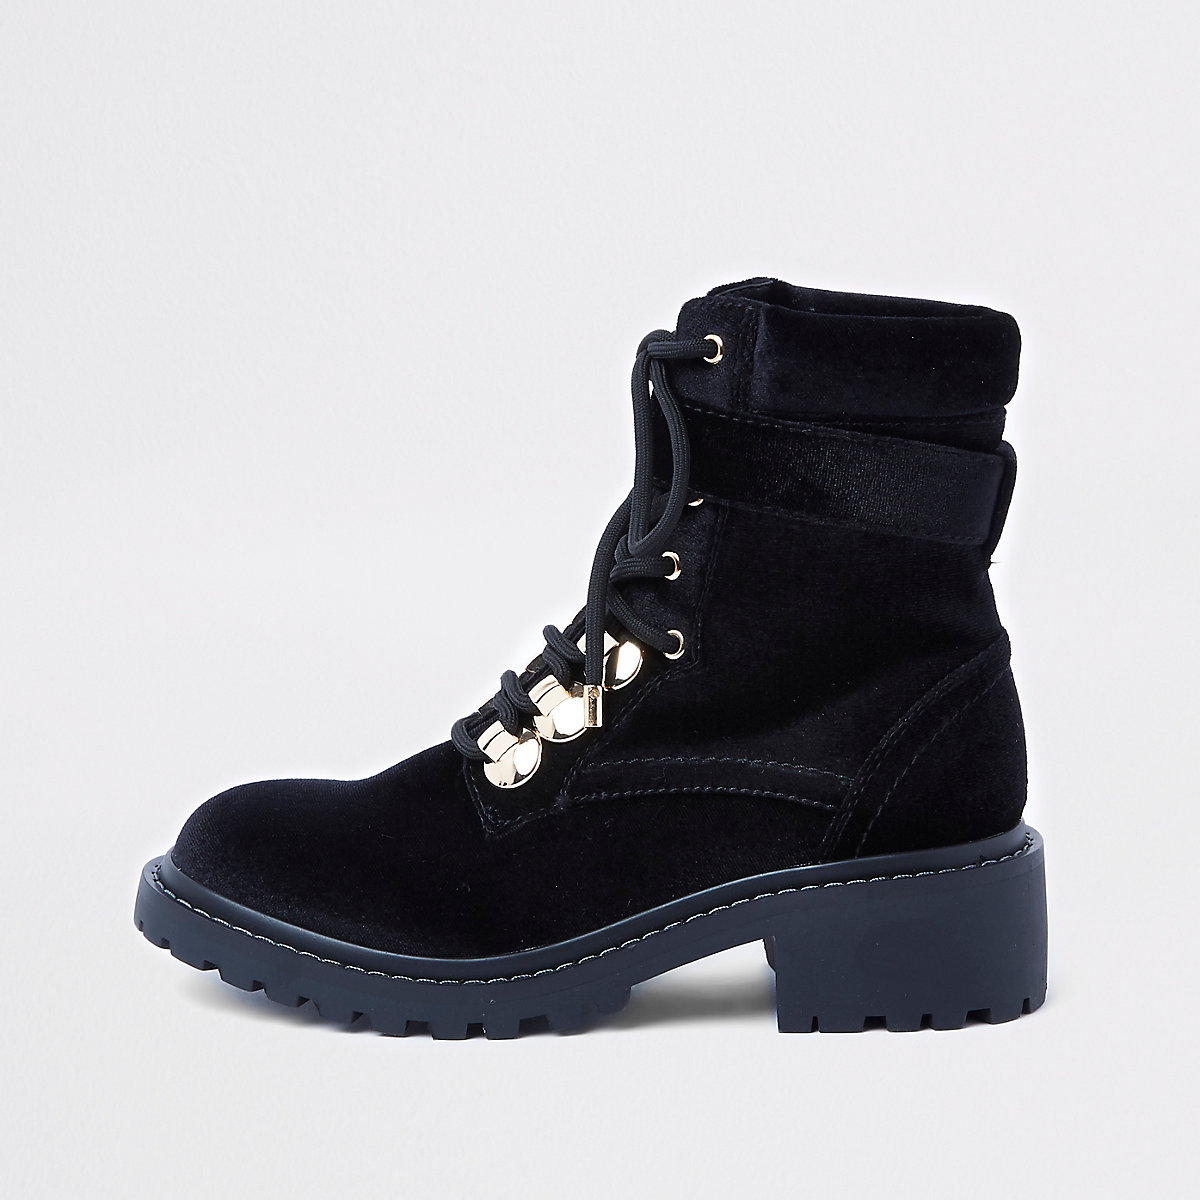 Black lace-up chunky hiking boots - Boots - Shoes   Boots - women 607da47a7